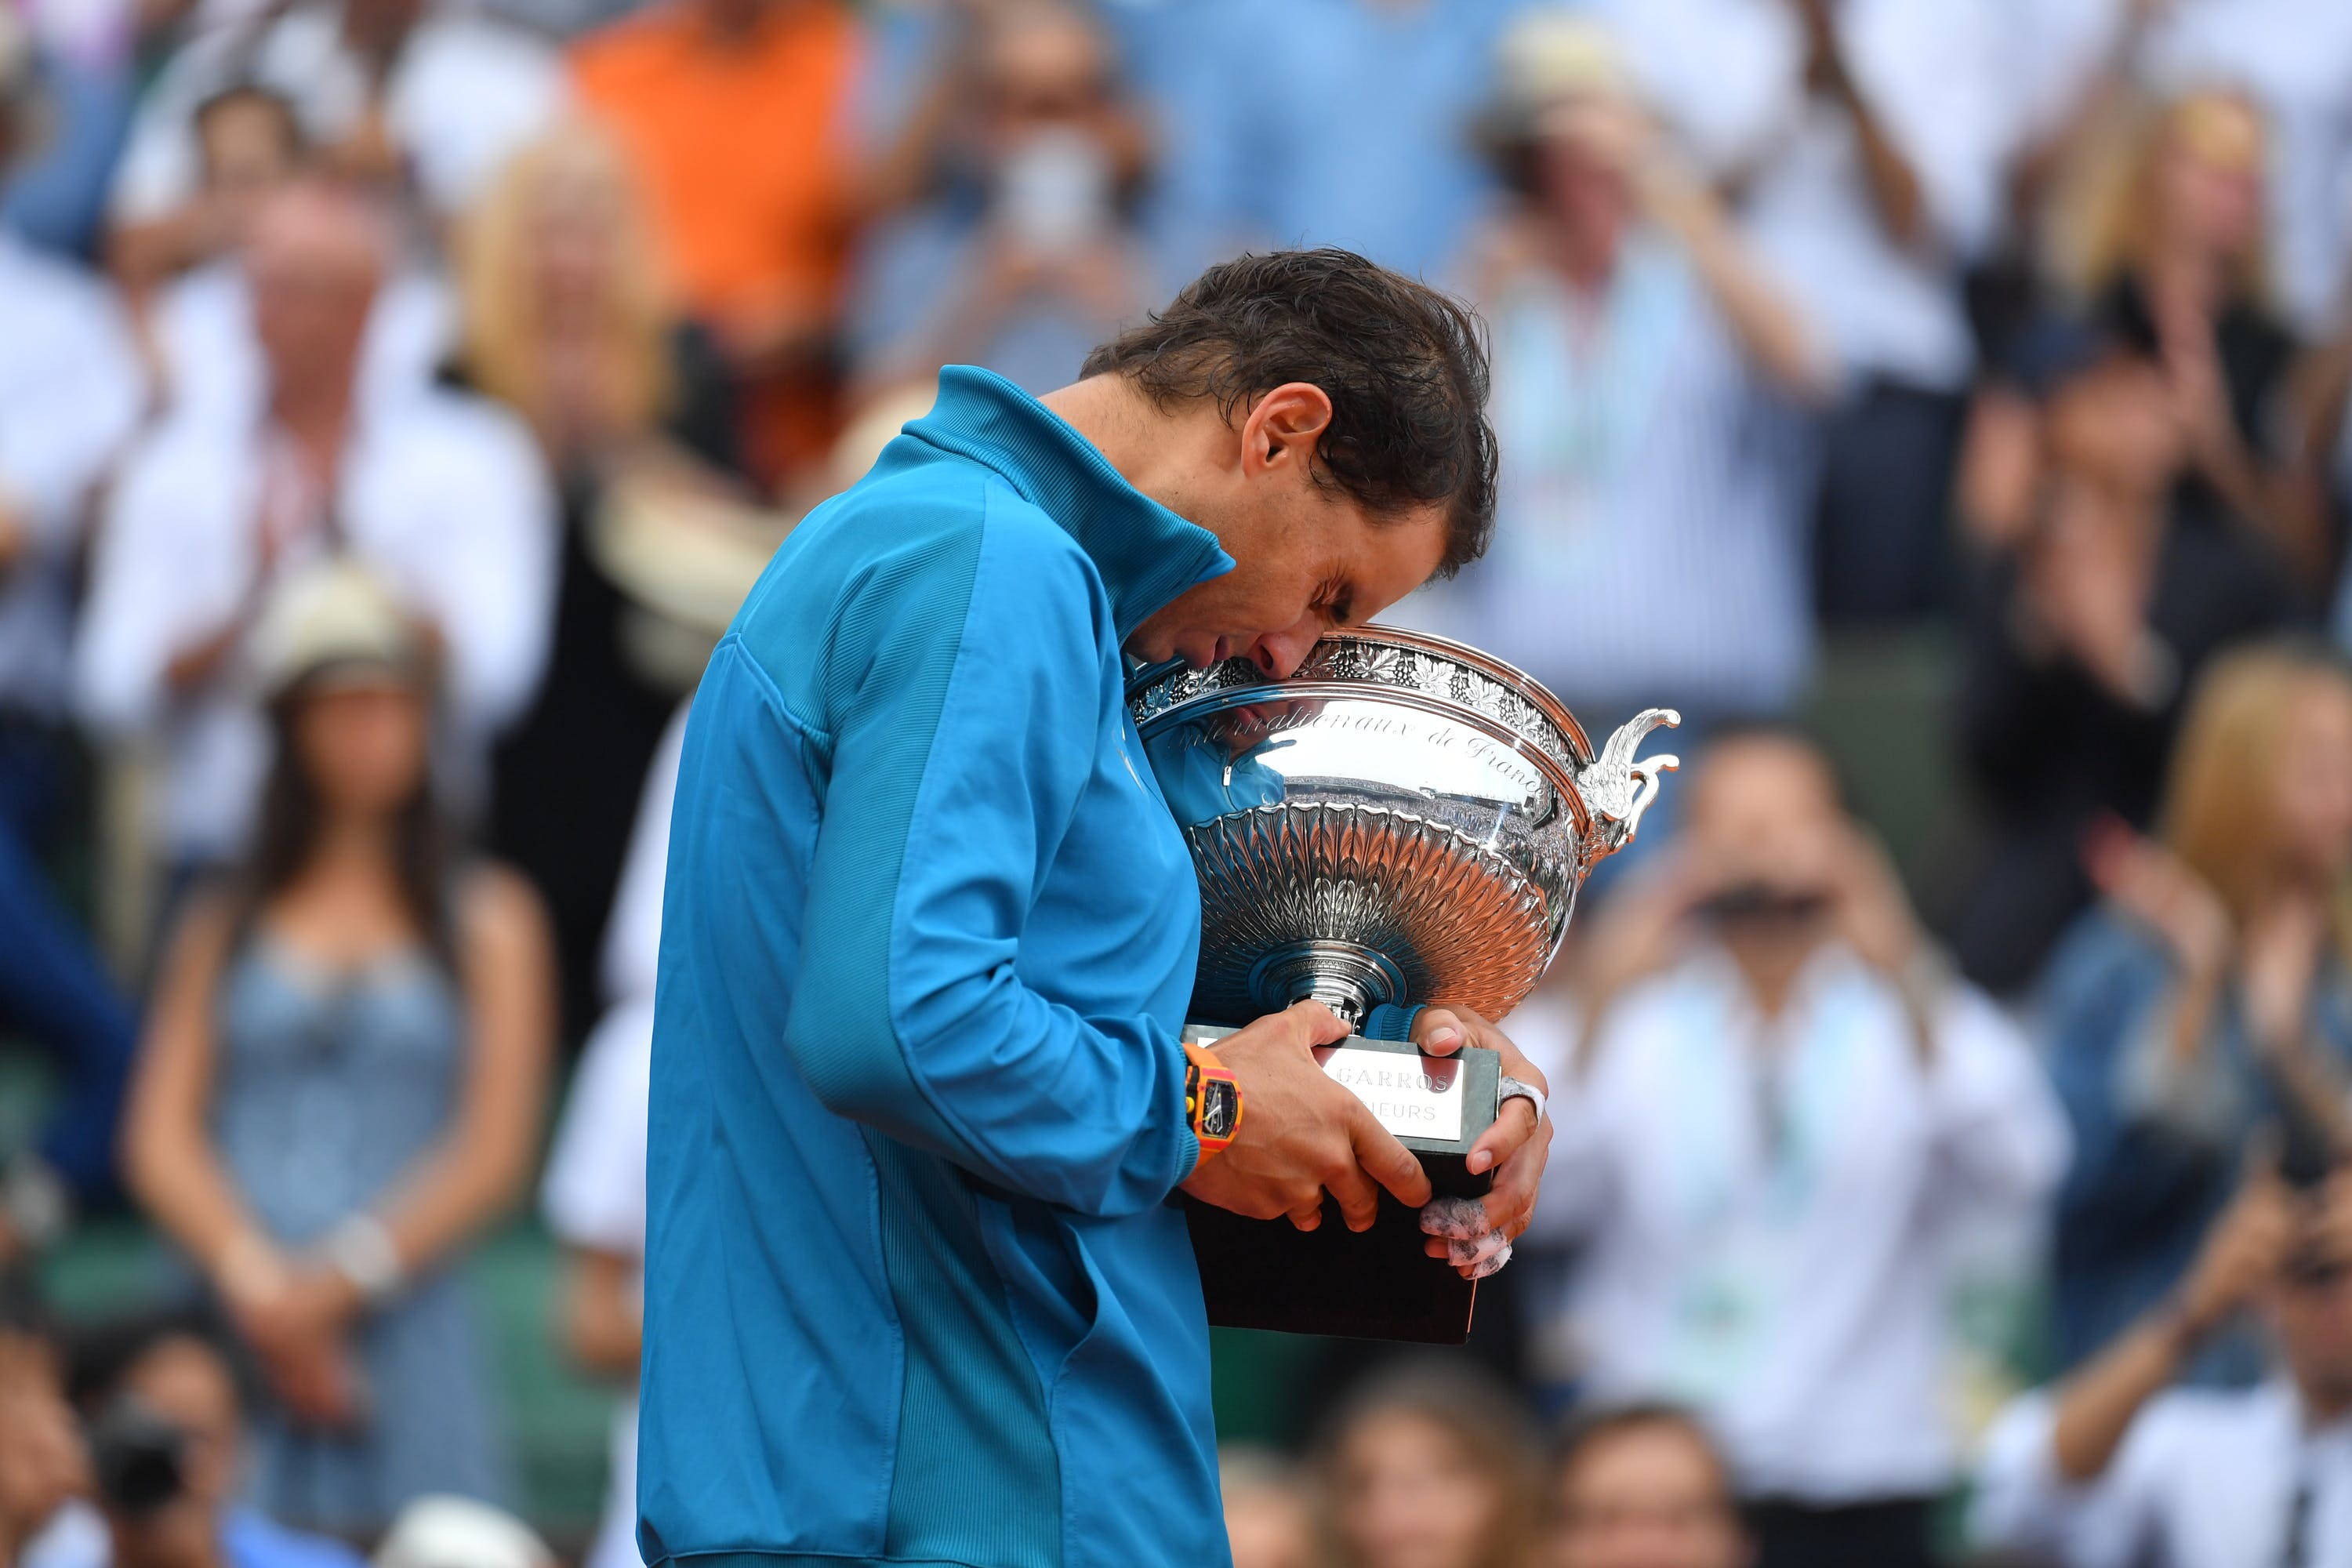 Rafael Nadal holding tight the Coupe des Mousquetaires during Roland-Garros 2018